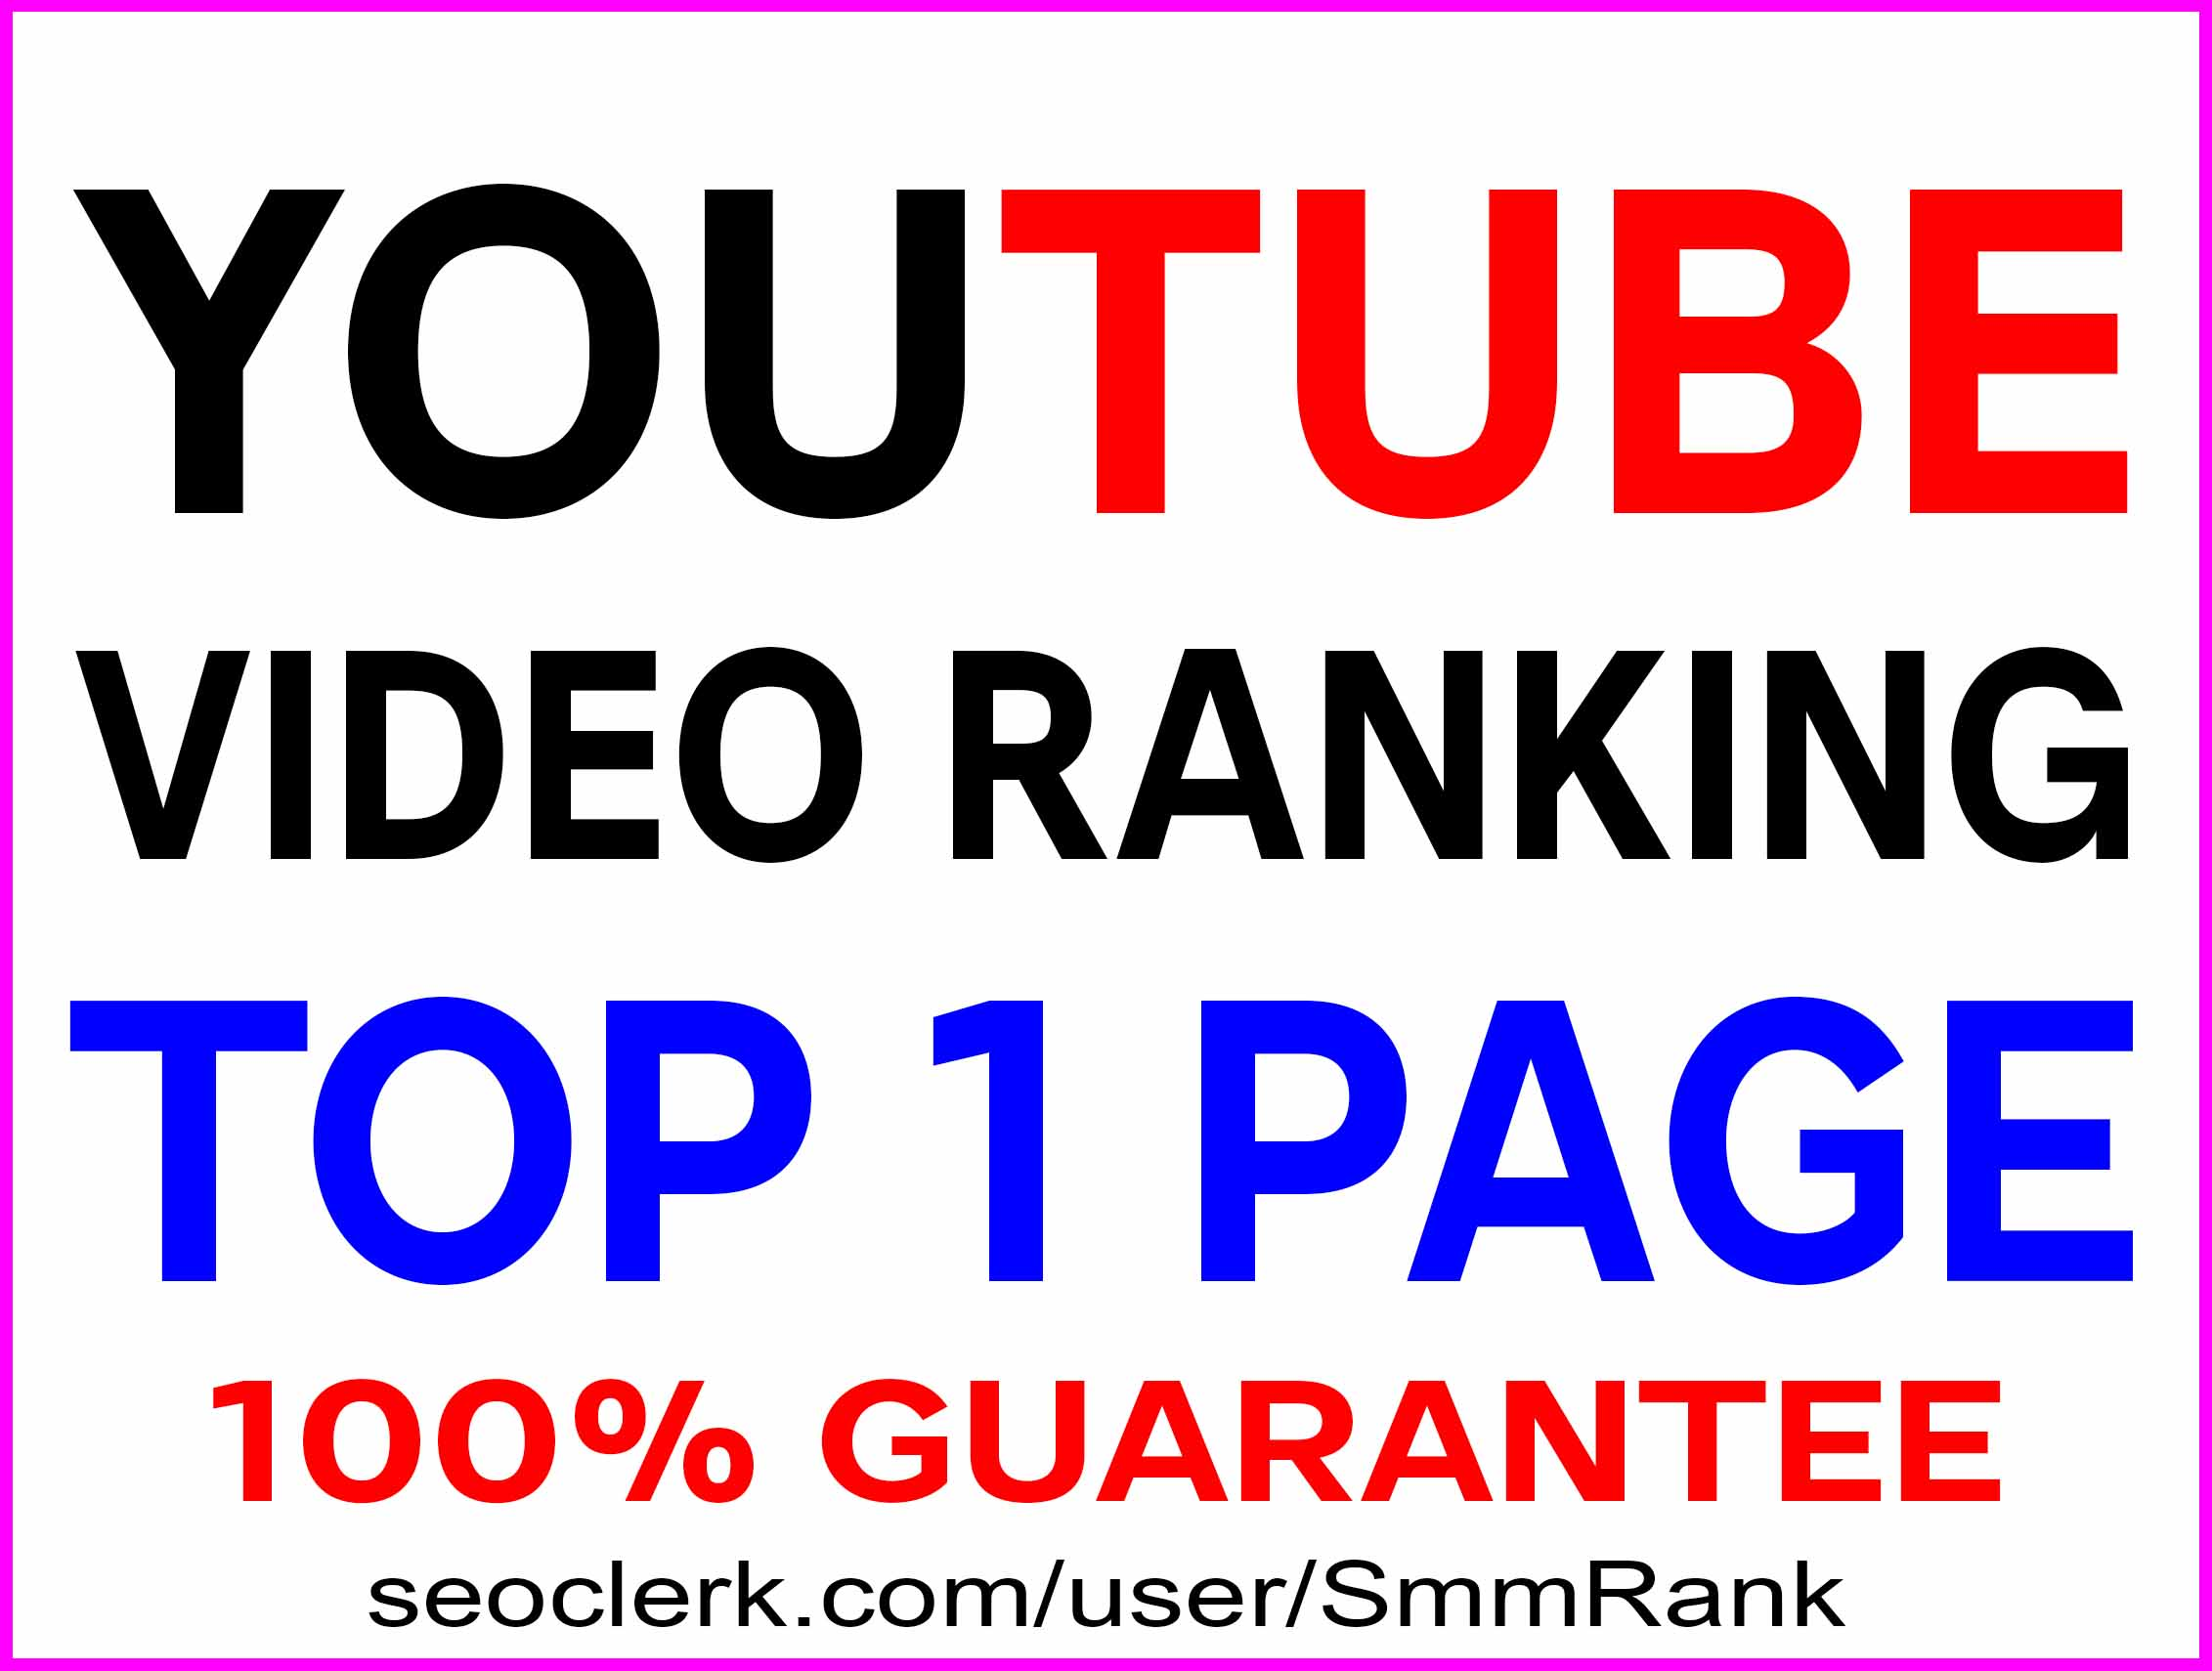 BOOST YOUTUBE VIDEO RANKING TOP 1 PAGE ON YOUTUBE - BEST RESULT 2020